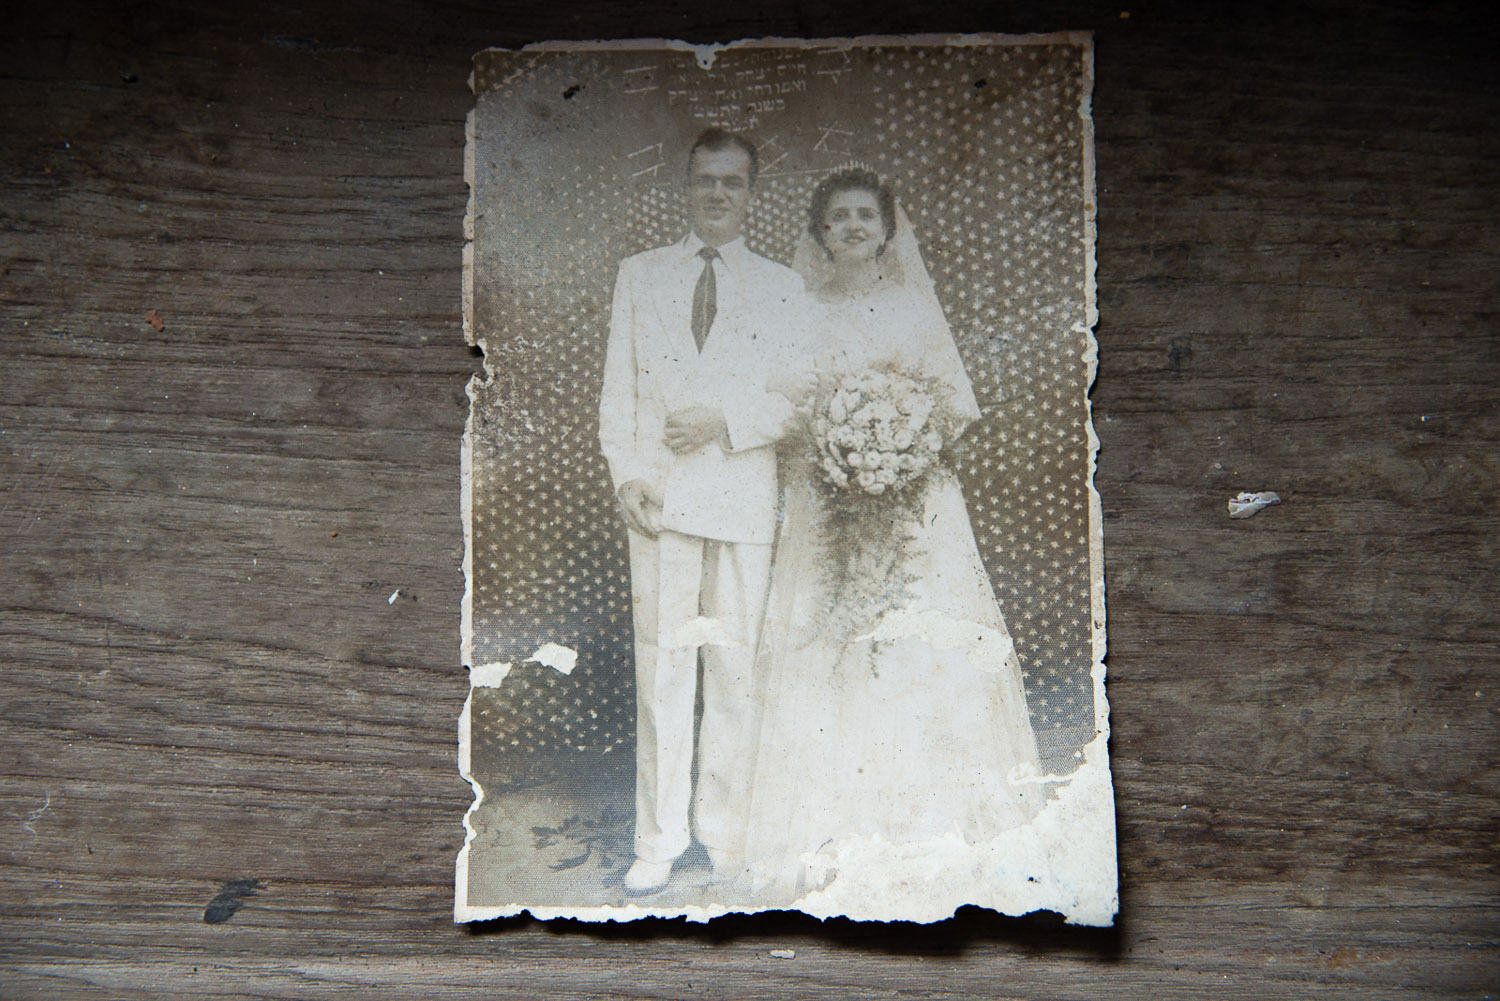 A wedding photograph lies on the windowsill of a Jewish home, vacated in the last decade as its owners died or left for Israel. The ground floor of the house now serves as the temporary Chabad house.